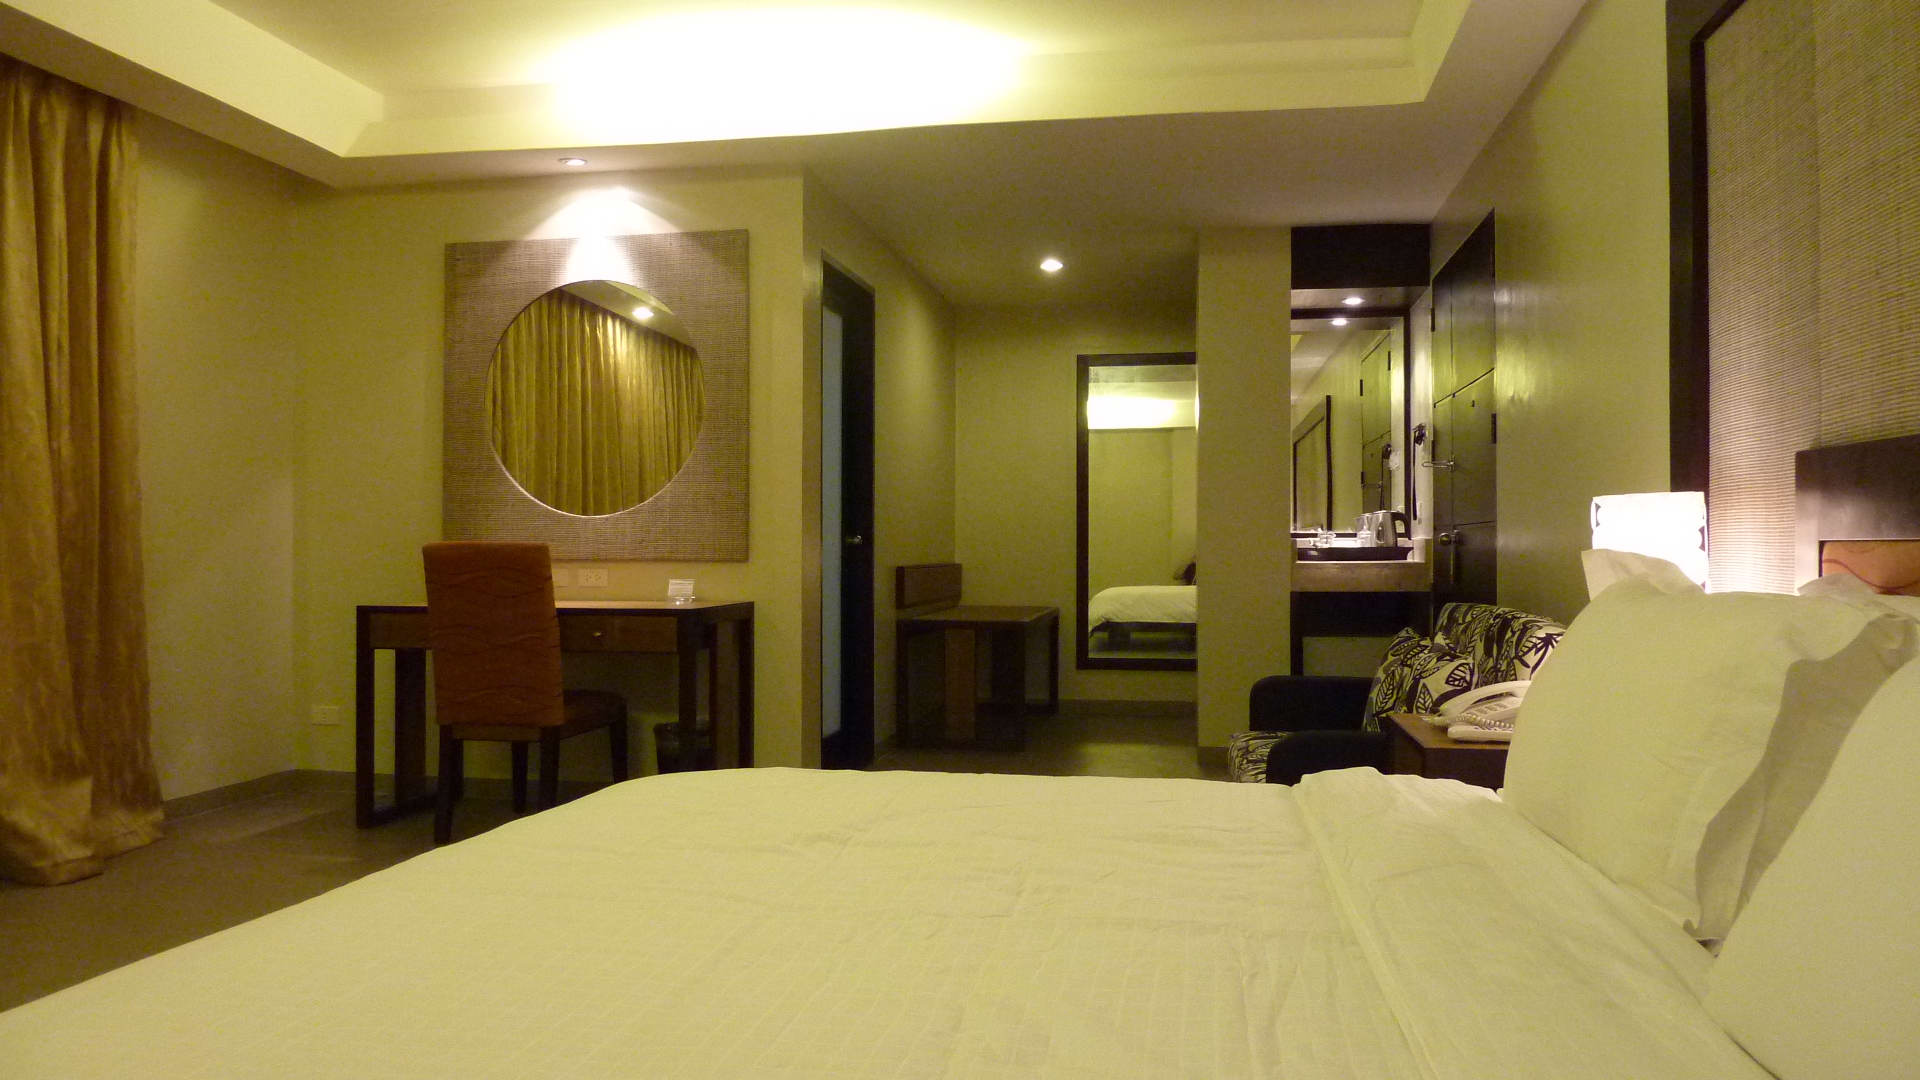 Sala Set For Sale In Iloilo City Circle Inn Iloilo City Center Hotel Rooms Circle Inn Iloilo